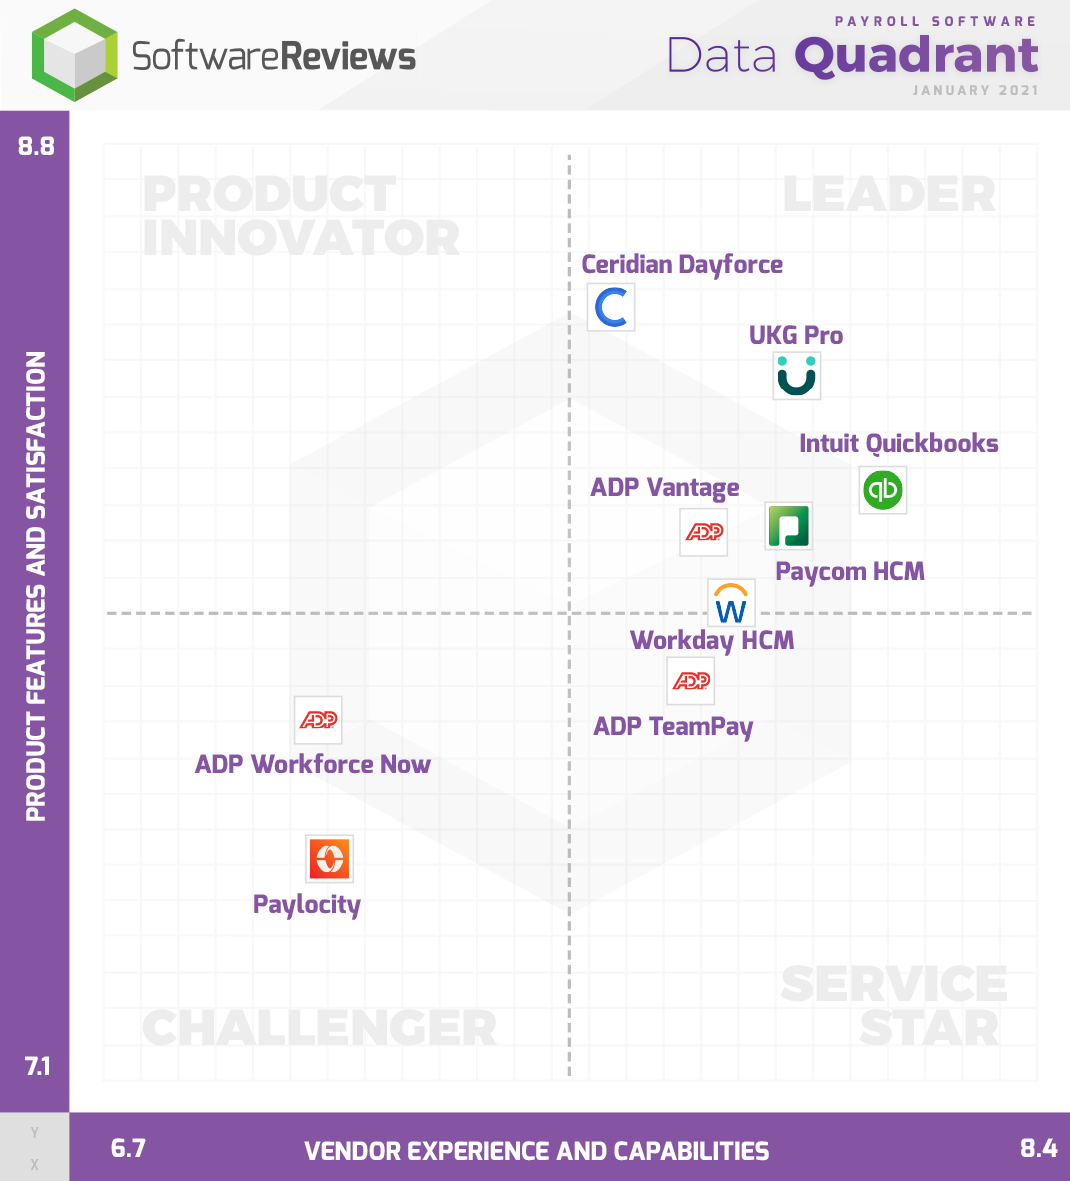 Payroll Software Data Quadrant